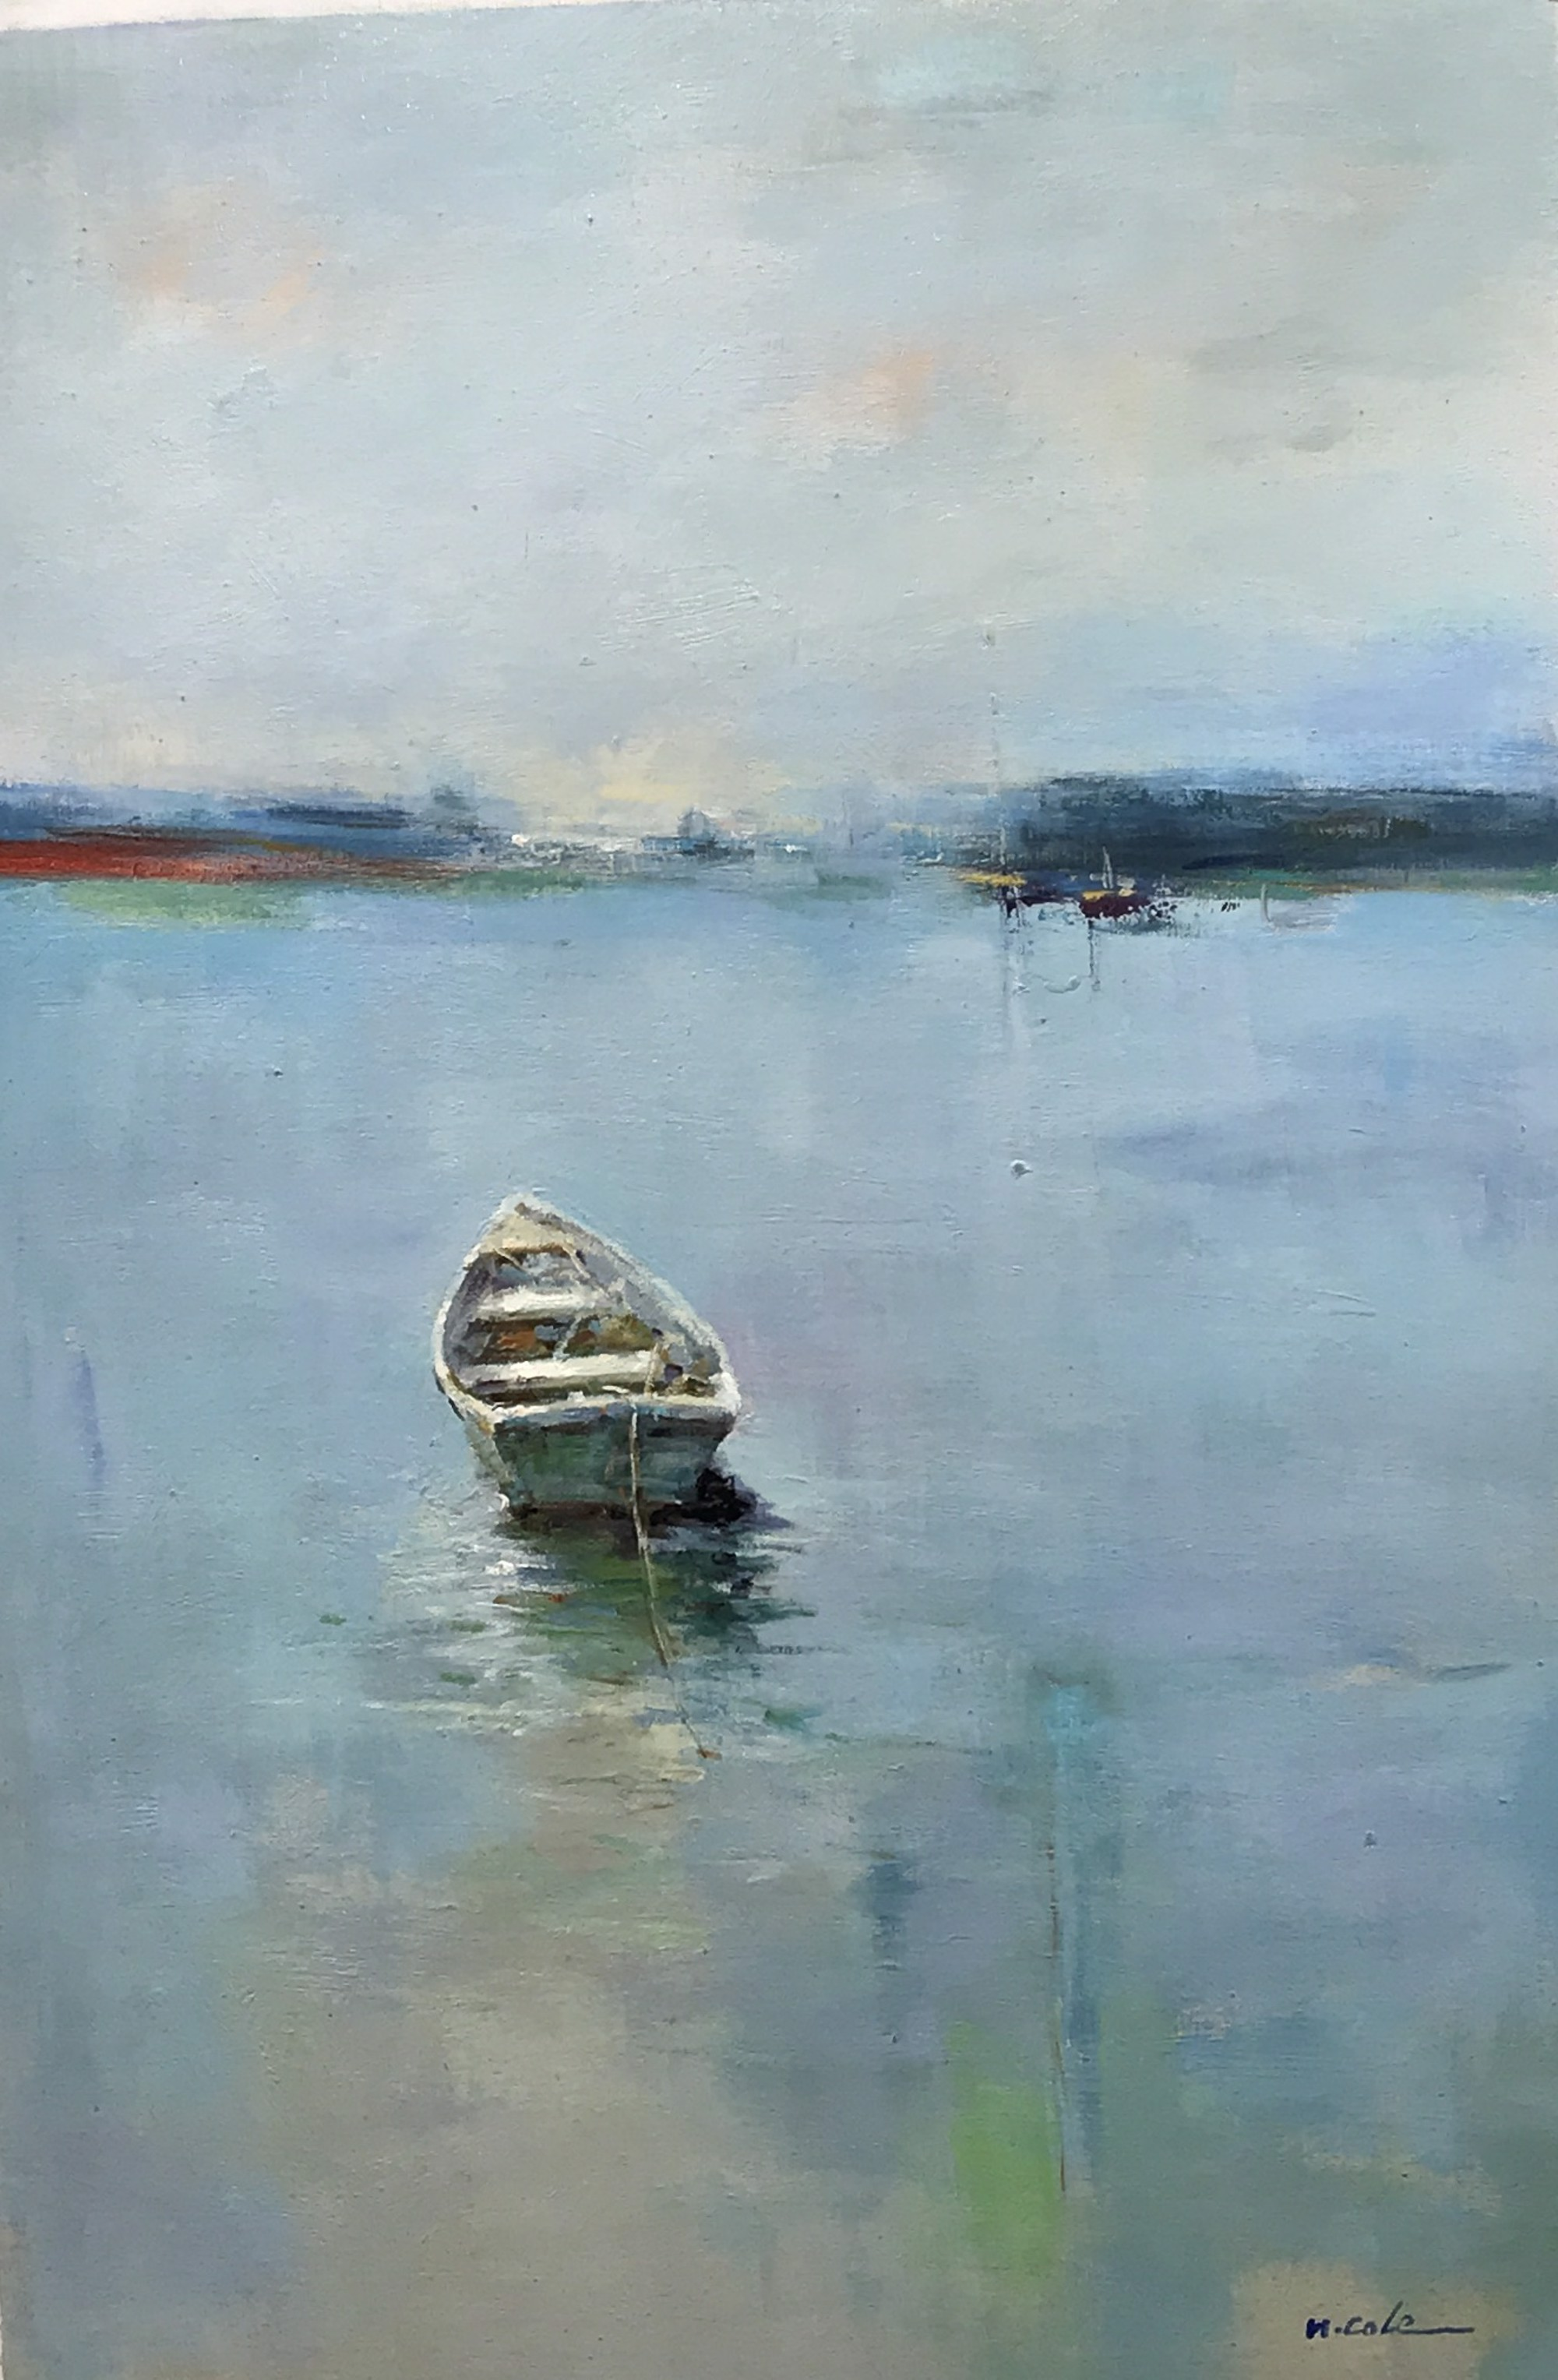 ANCHORED BY THE STERN by H COLE